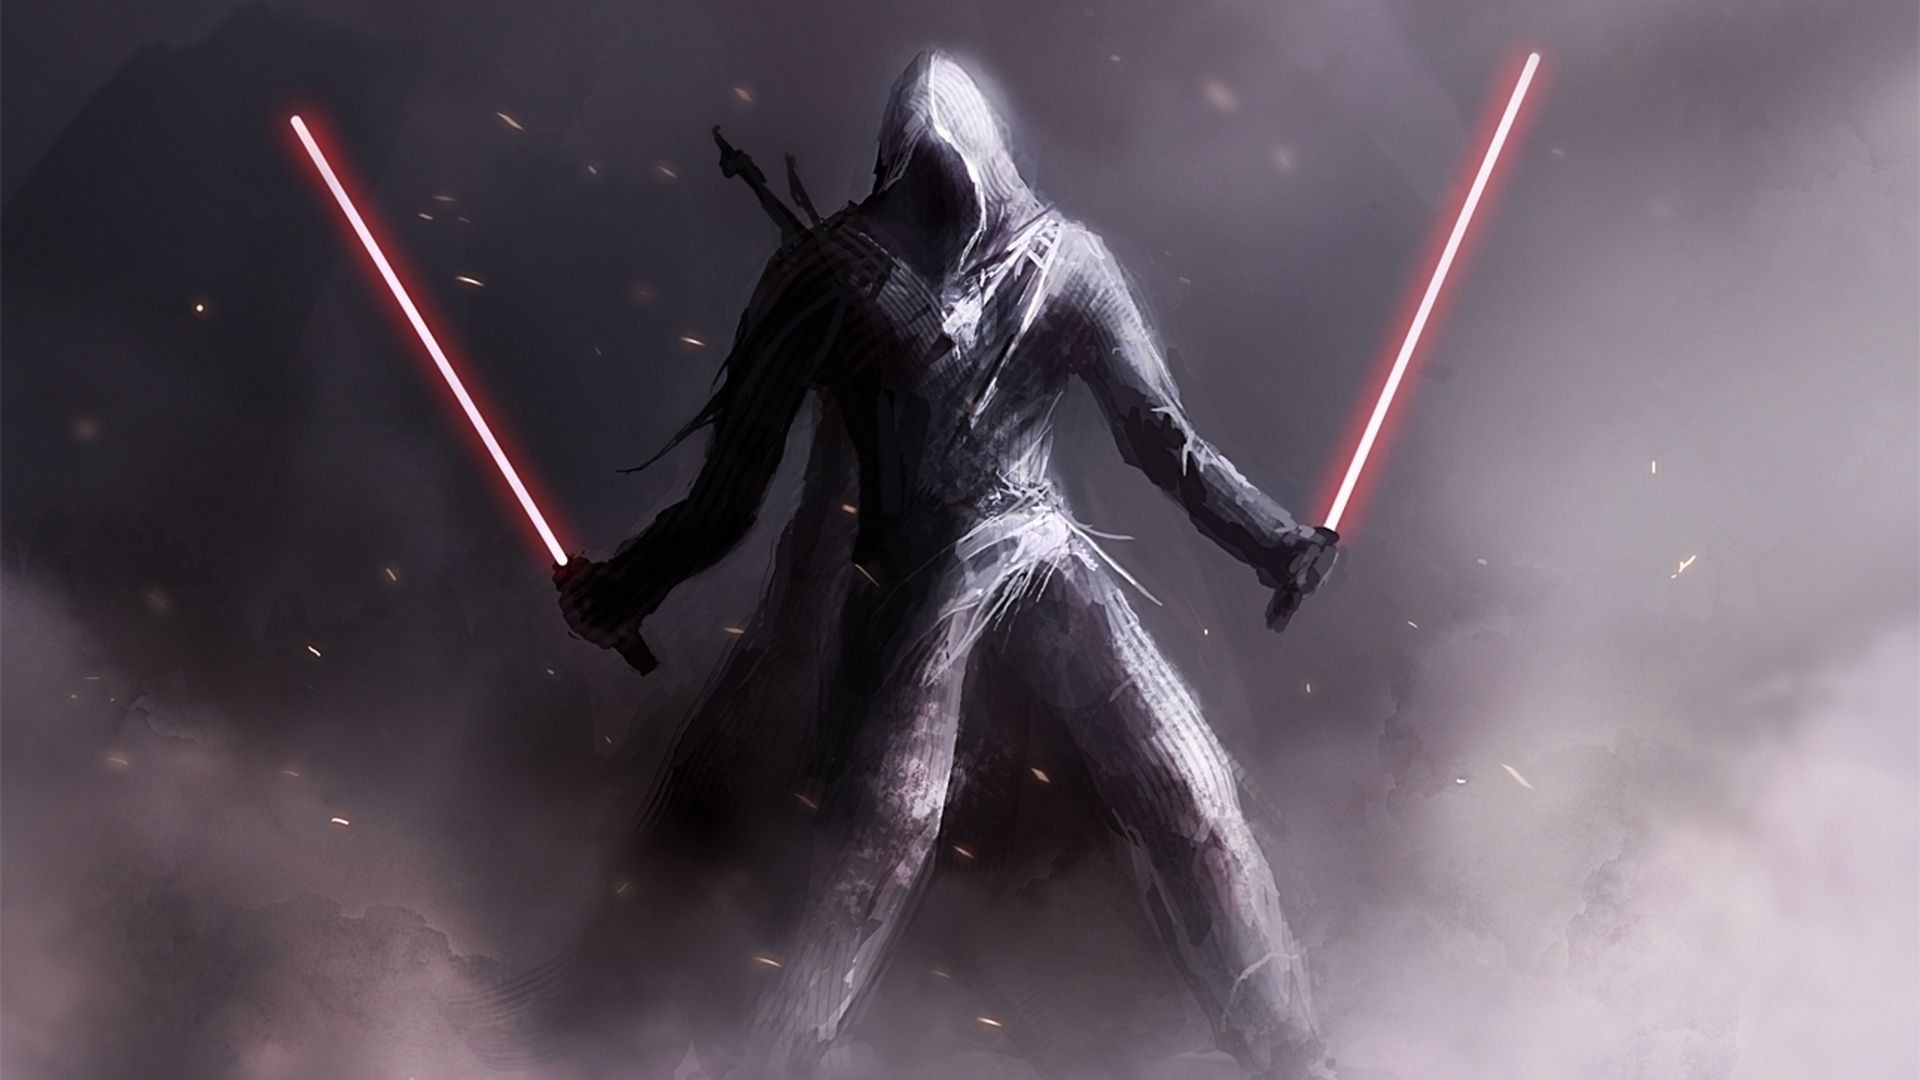 1920x1080 ... fiction wallpaper hd star wars sith wallpapers wide at ...